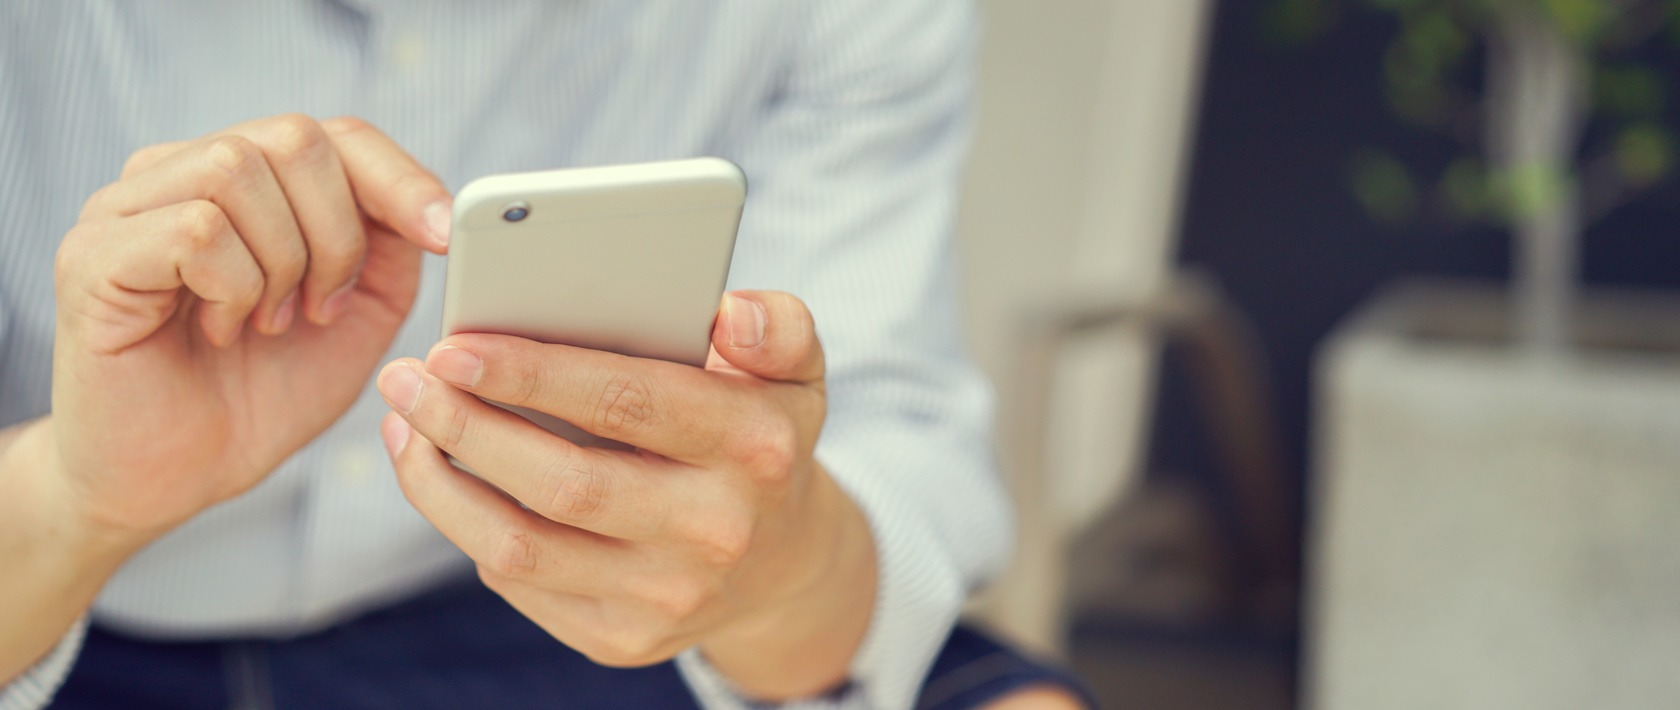 What's On Your Phone? 7 Best Smartphone Apps for Small Business Owners